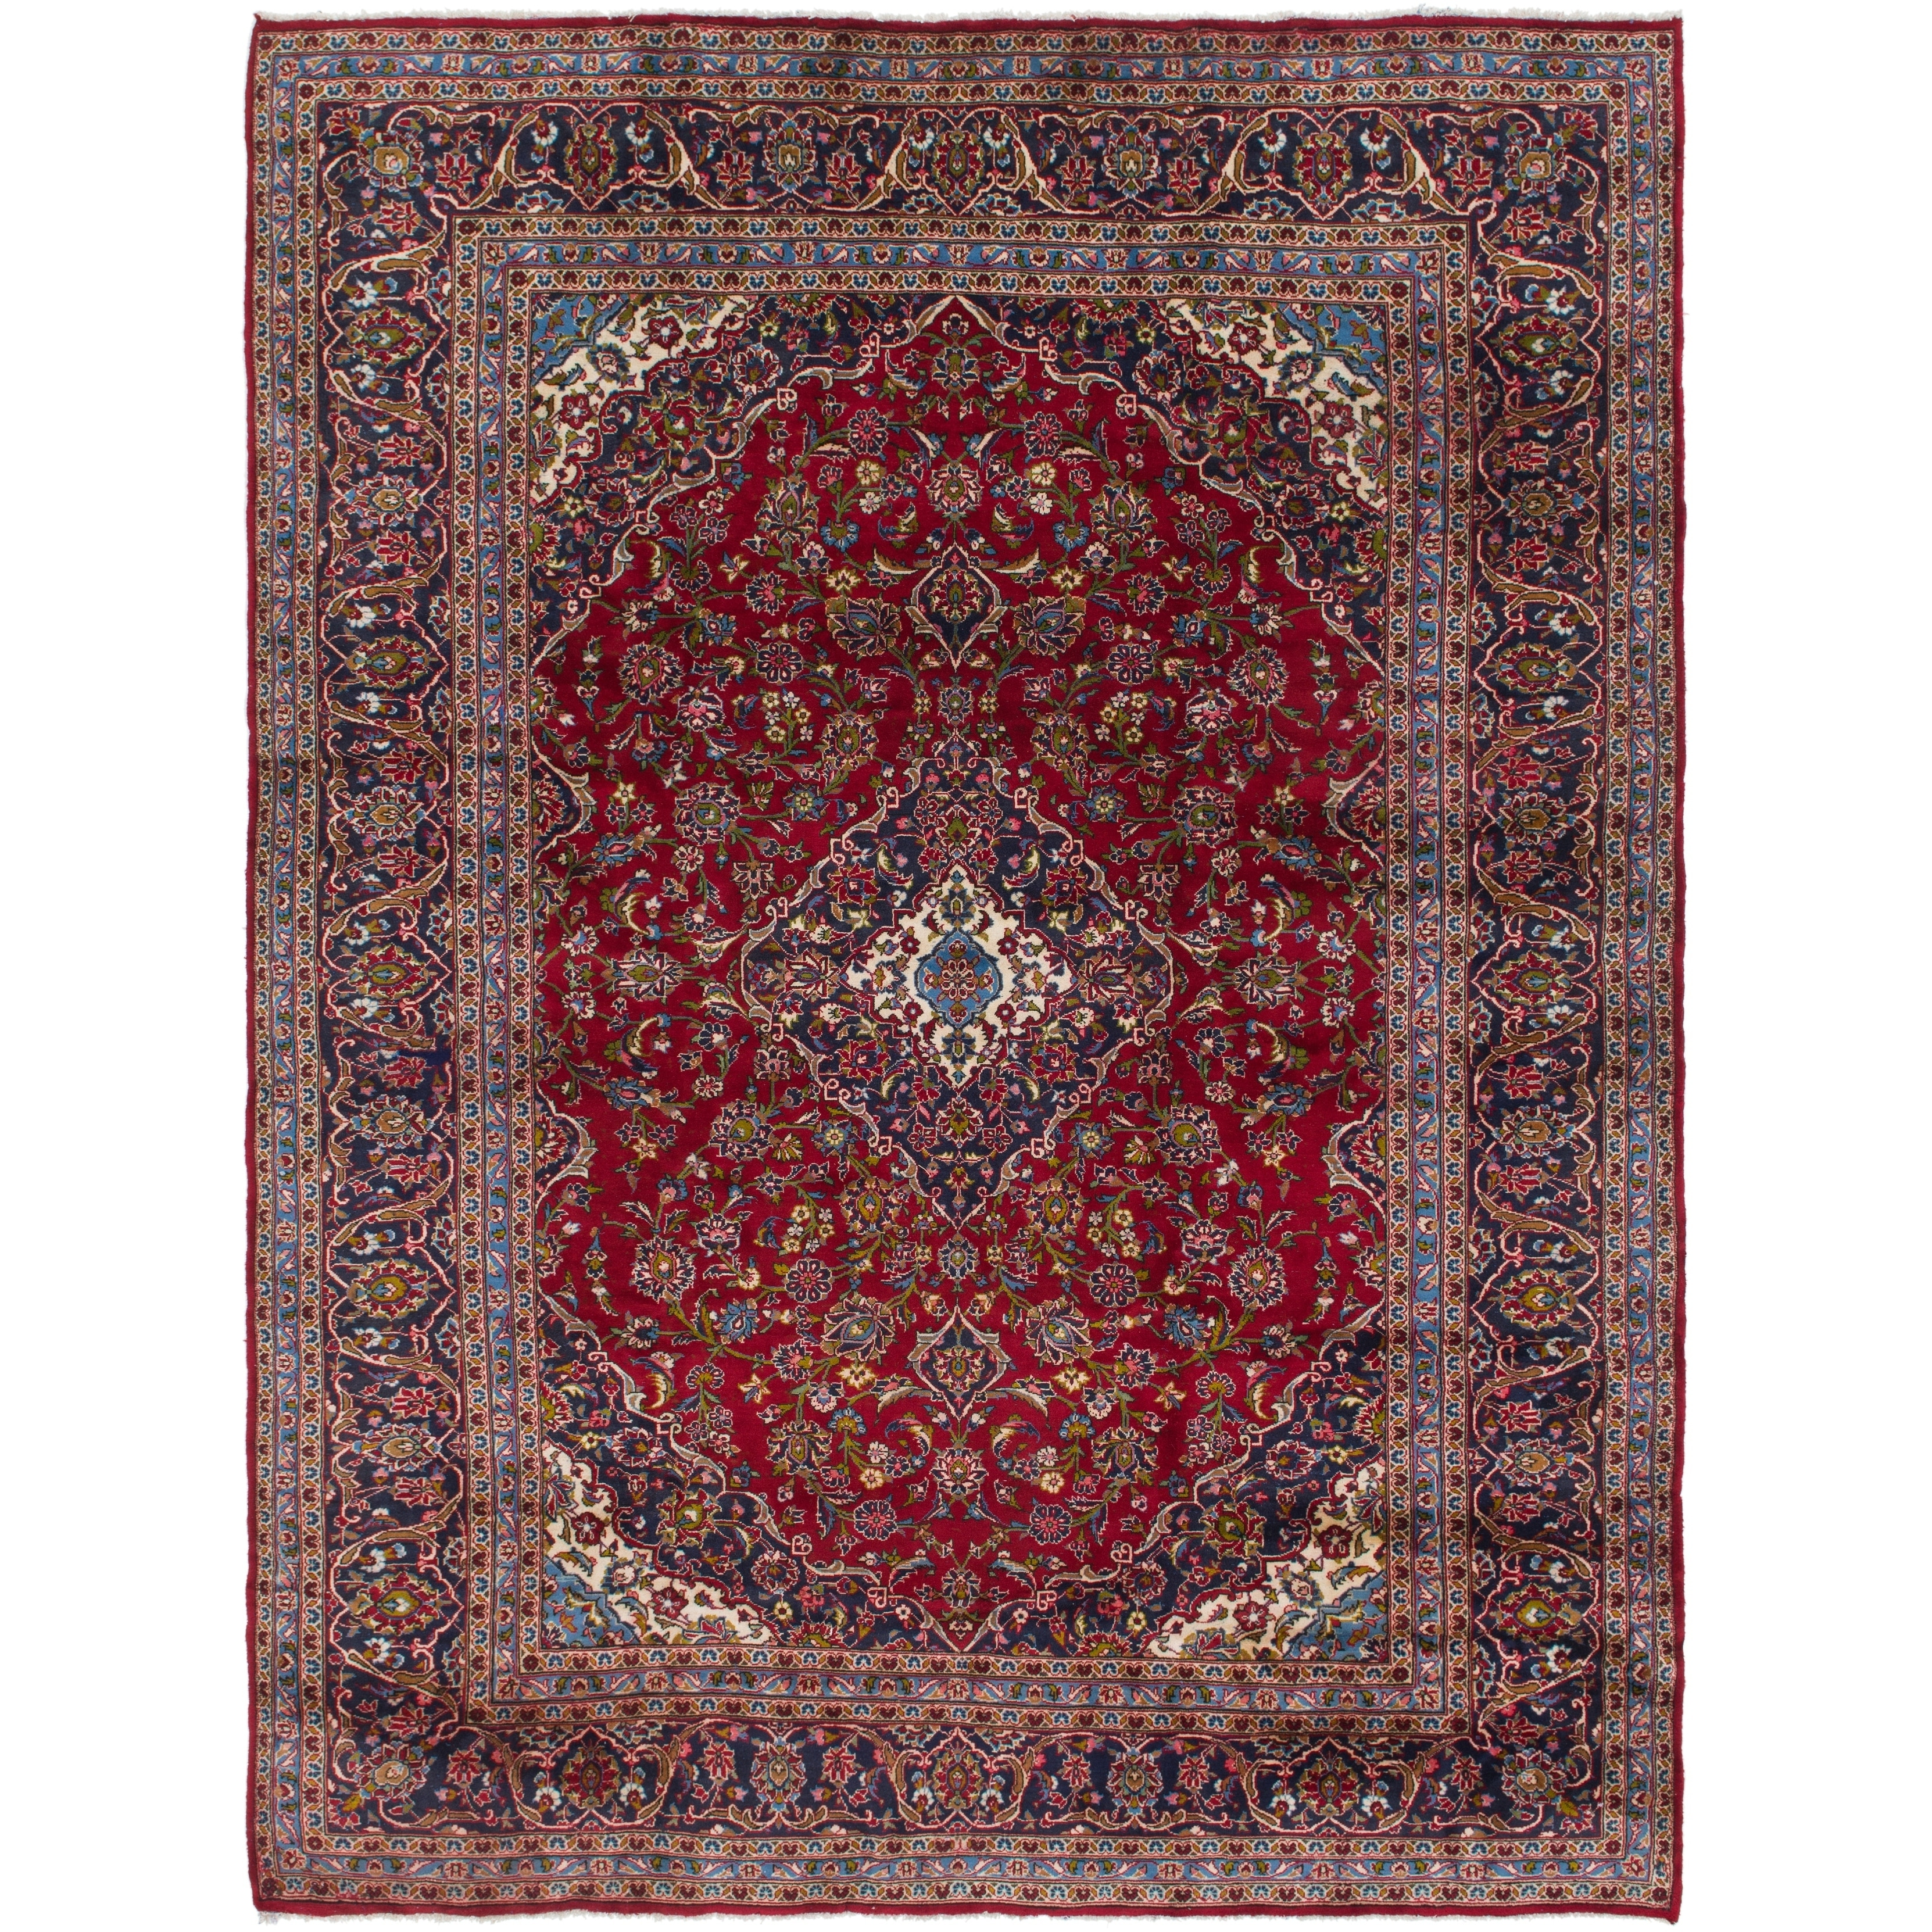 Hand Knotted Kashan Semi Antique Wool Area Rug - 9 9 x 12 10 (Red - 9 9 x 12 10)